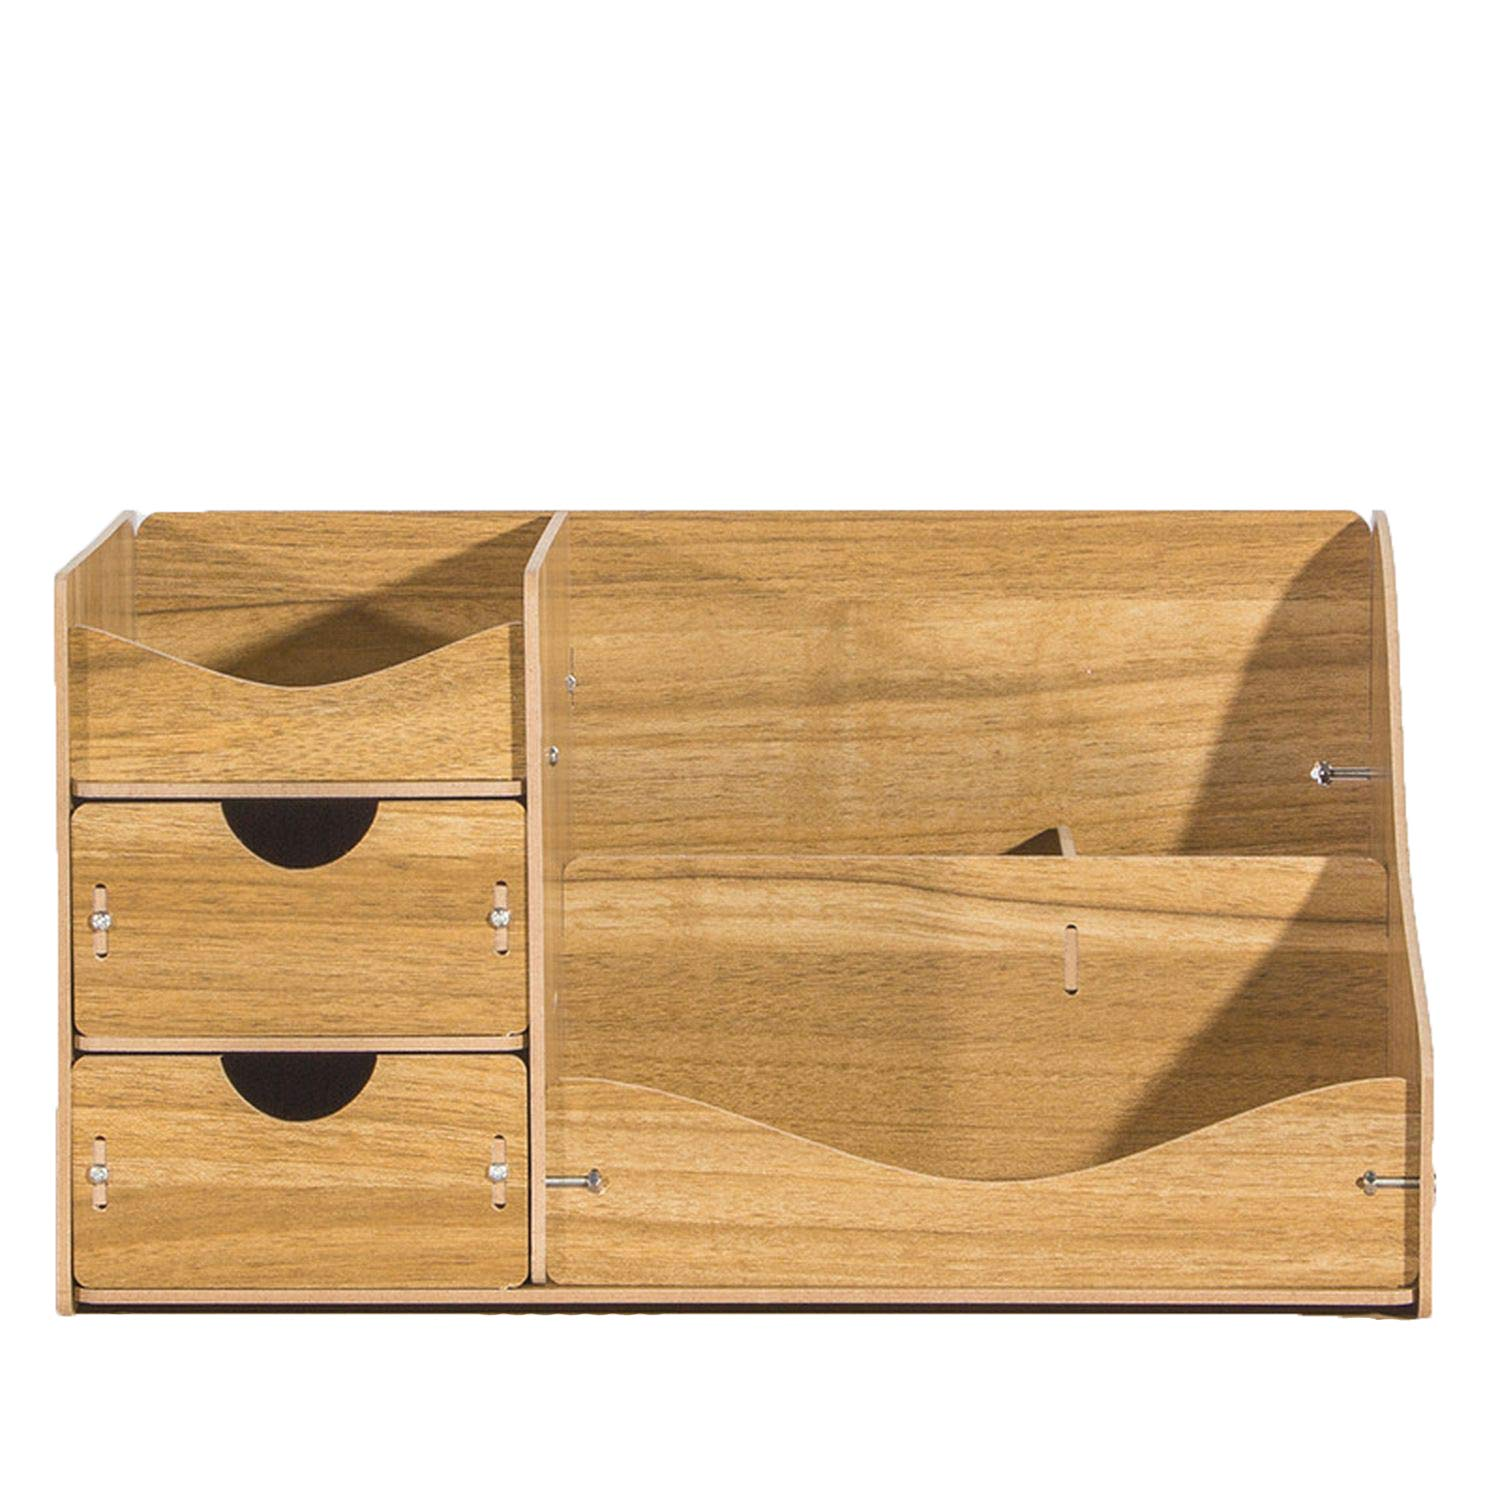 Collocation-Online Eco-friendly Cosmetics Removable Desktop Jewelry Toys Wood Make Up Organizer,one size,walnut AD51